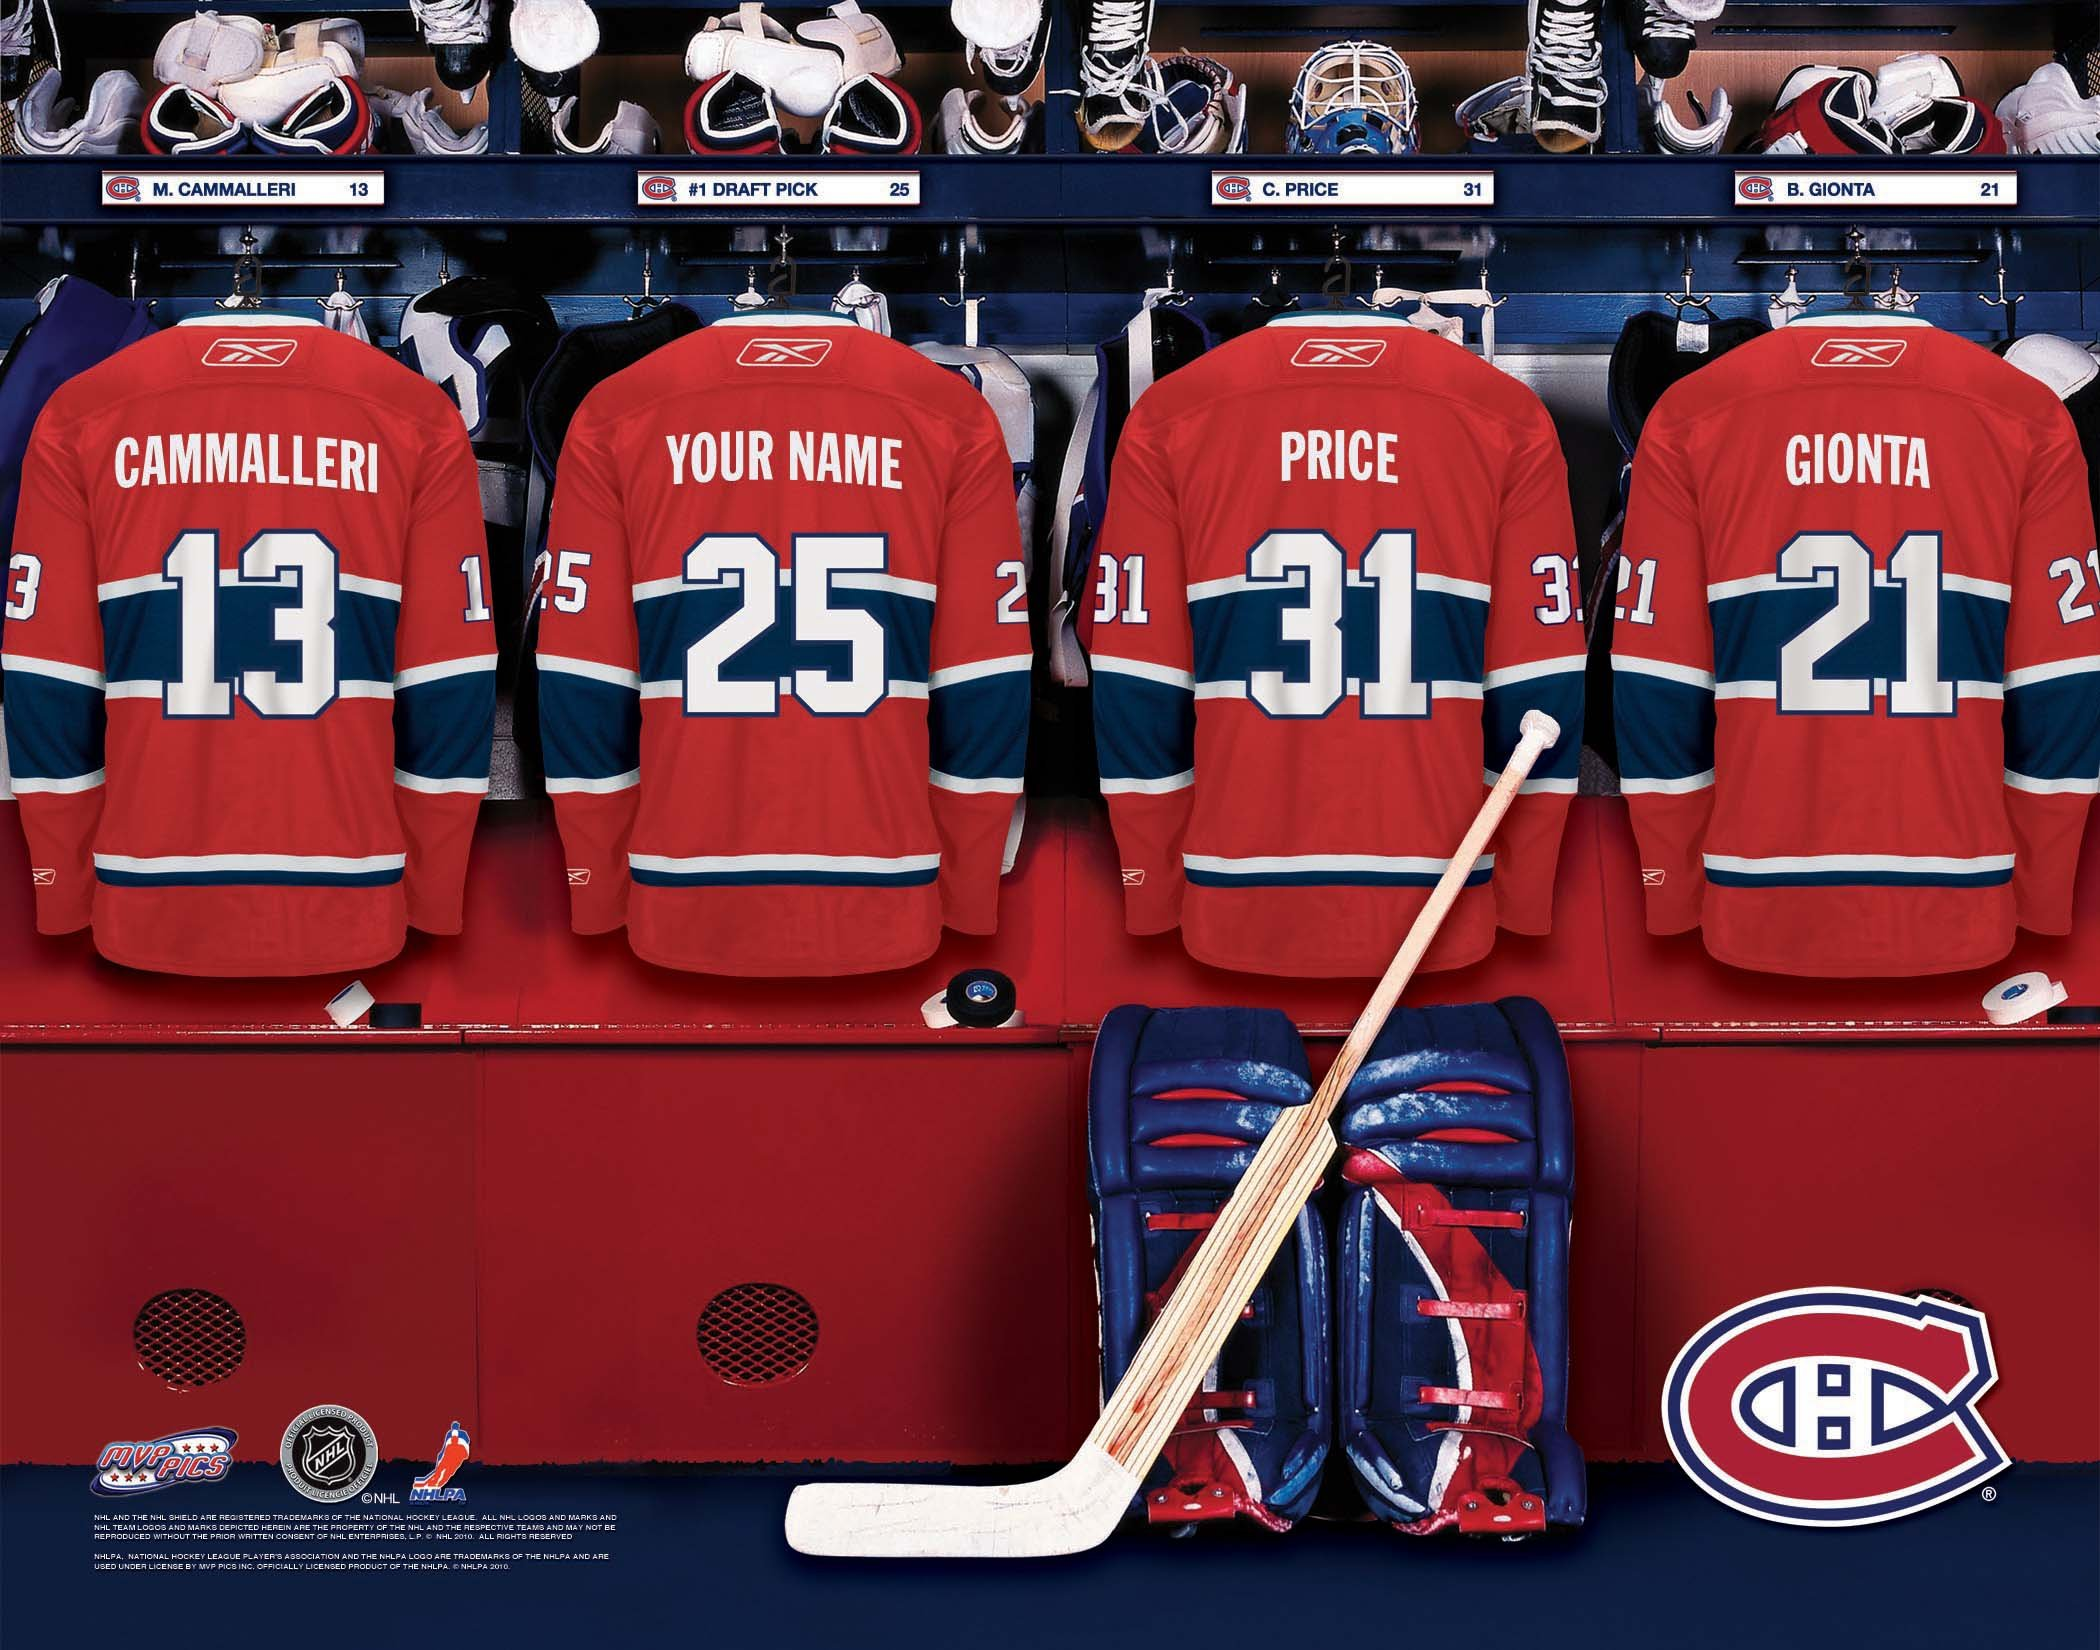 2100x1650 - Montreal Canadiens Wallpapers 20